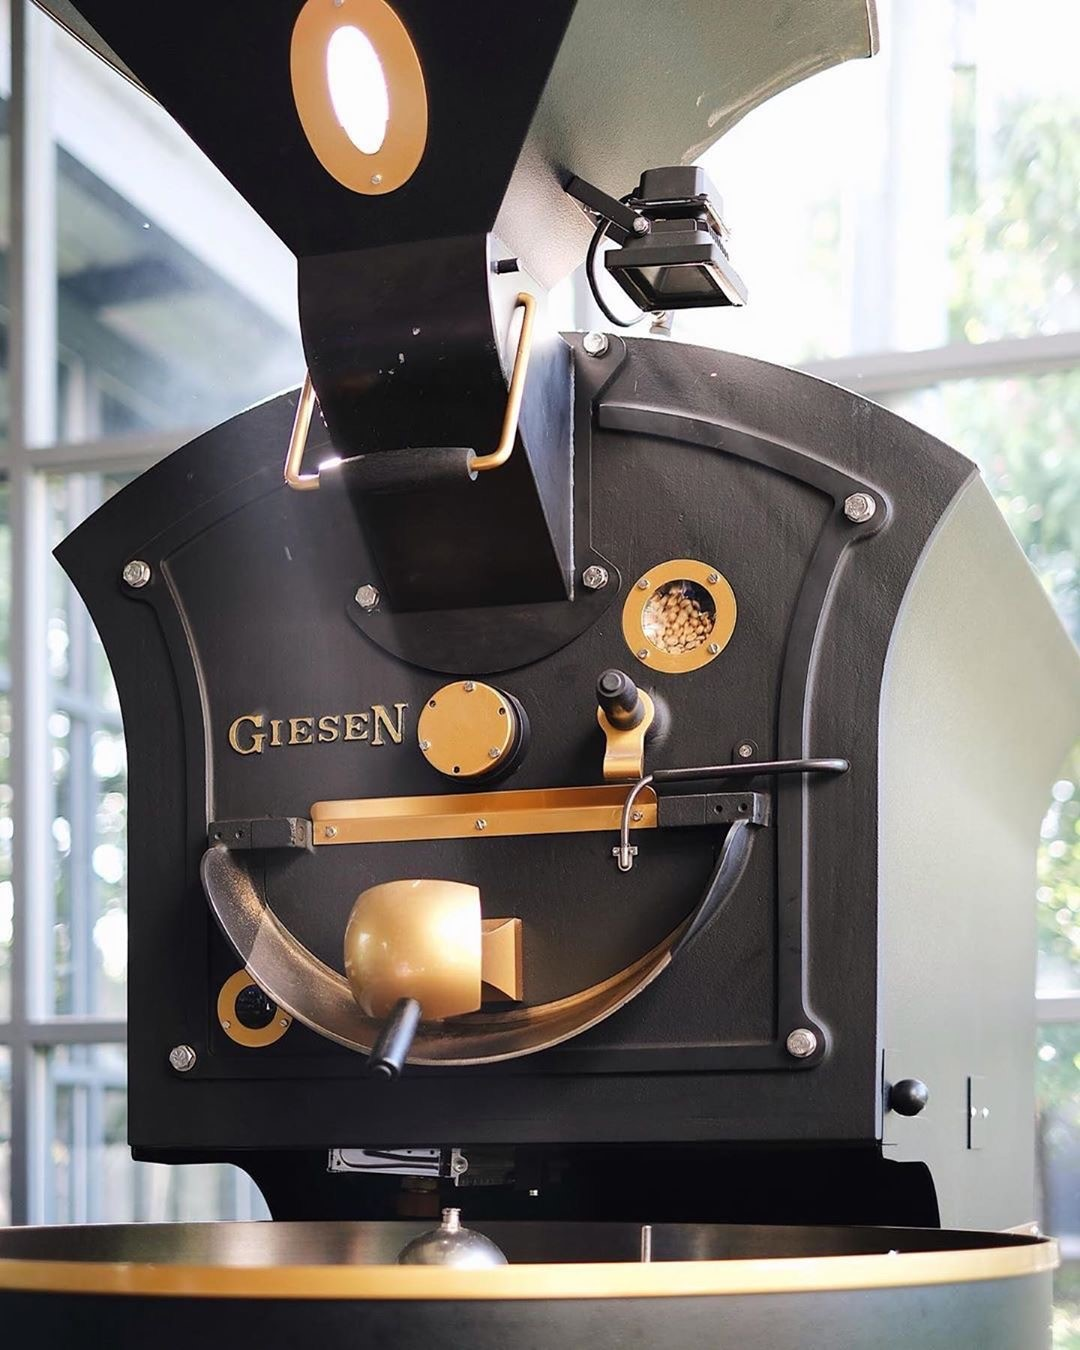 Tips for coffee brewing try different roasters